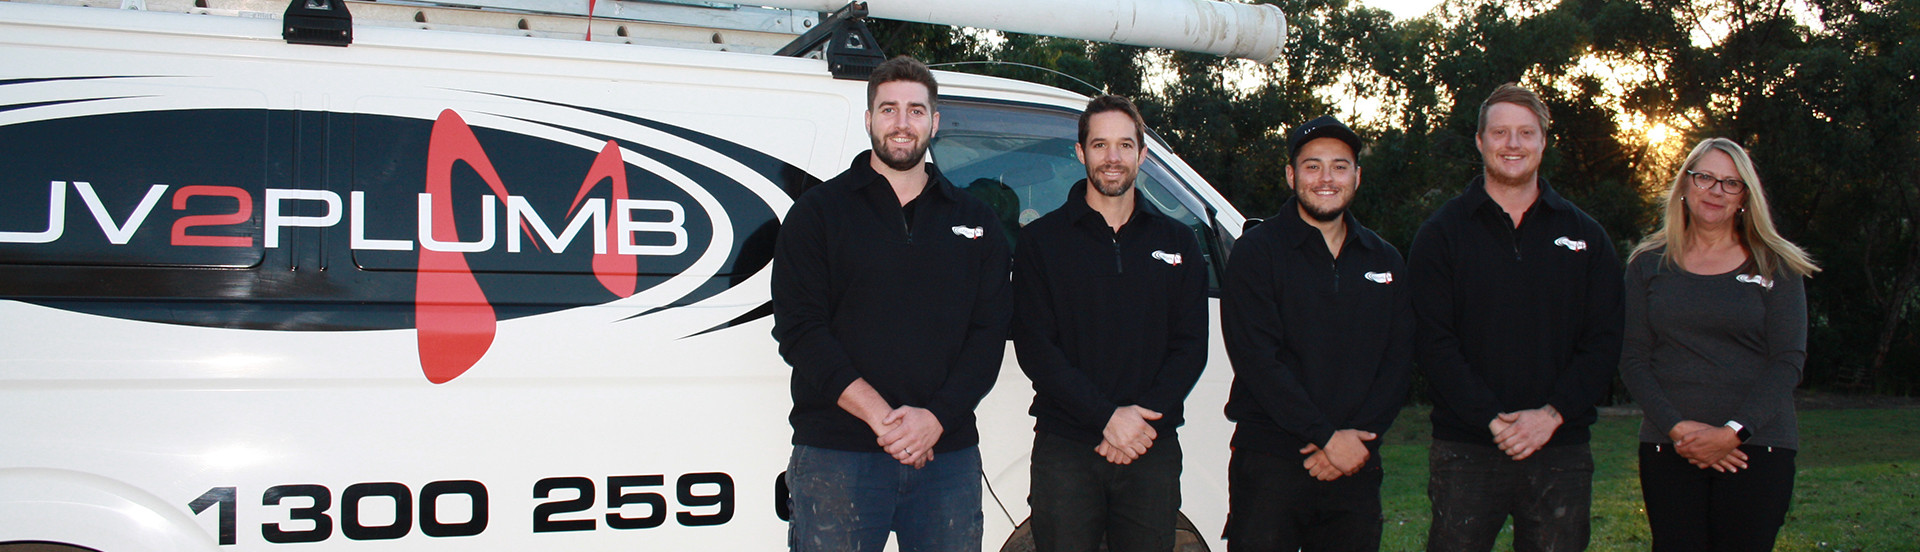 Pakenham plumbing team photo